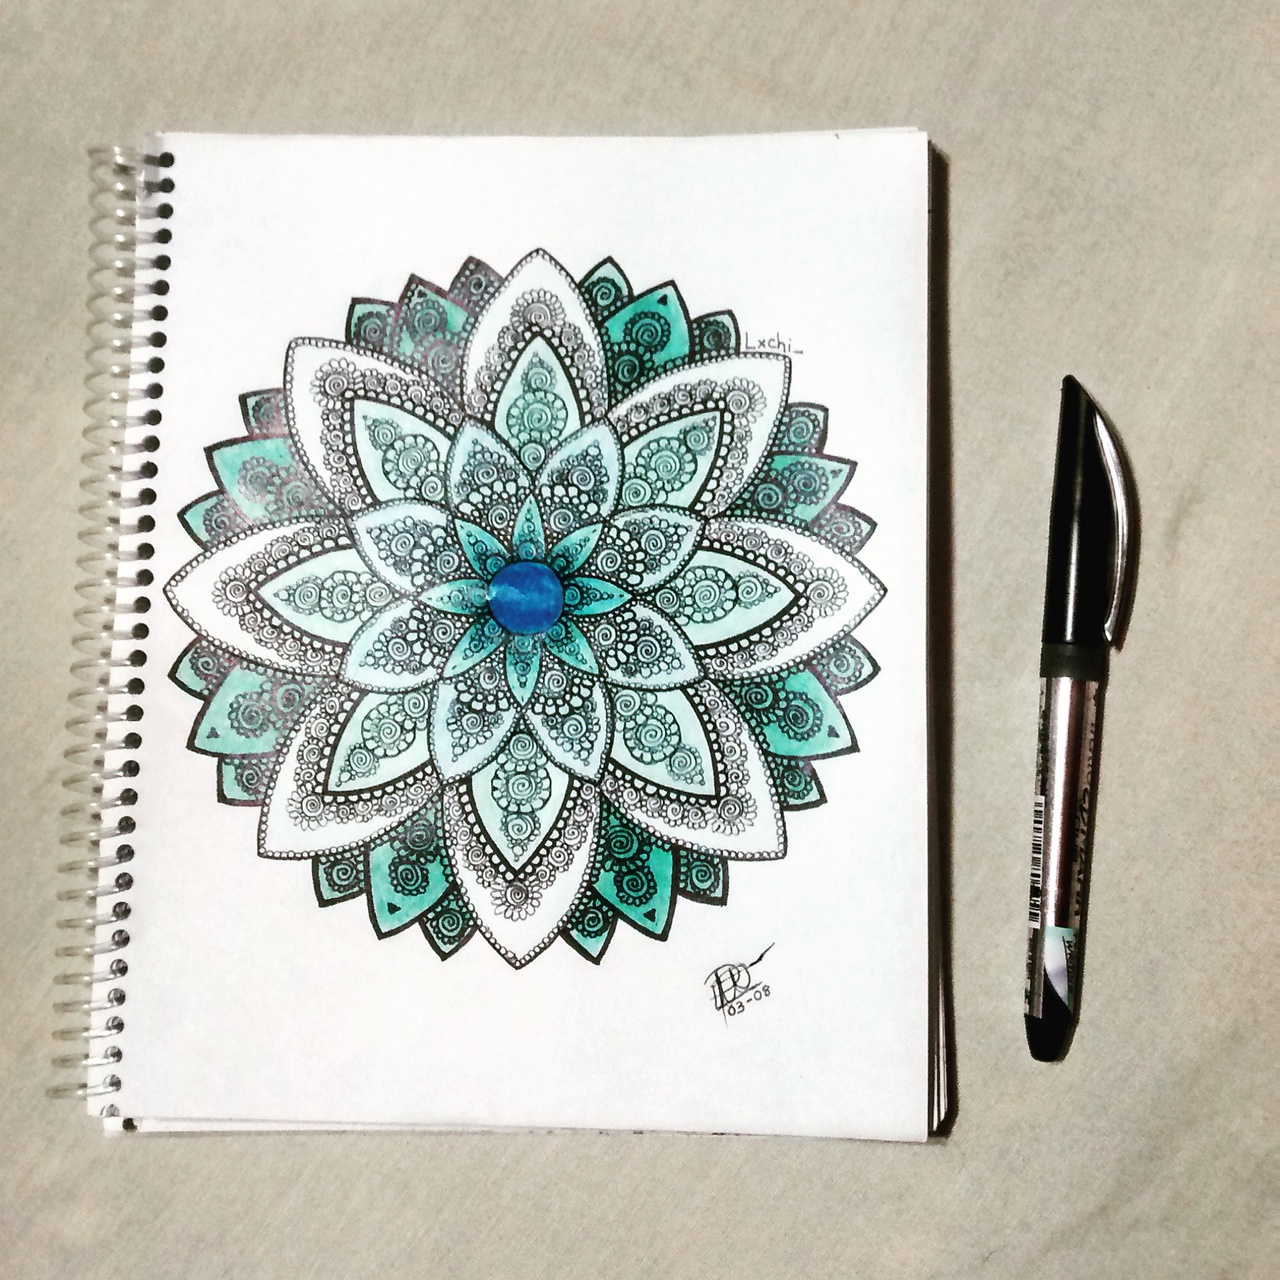 art, artistic, draw and drawed